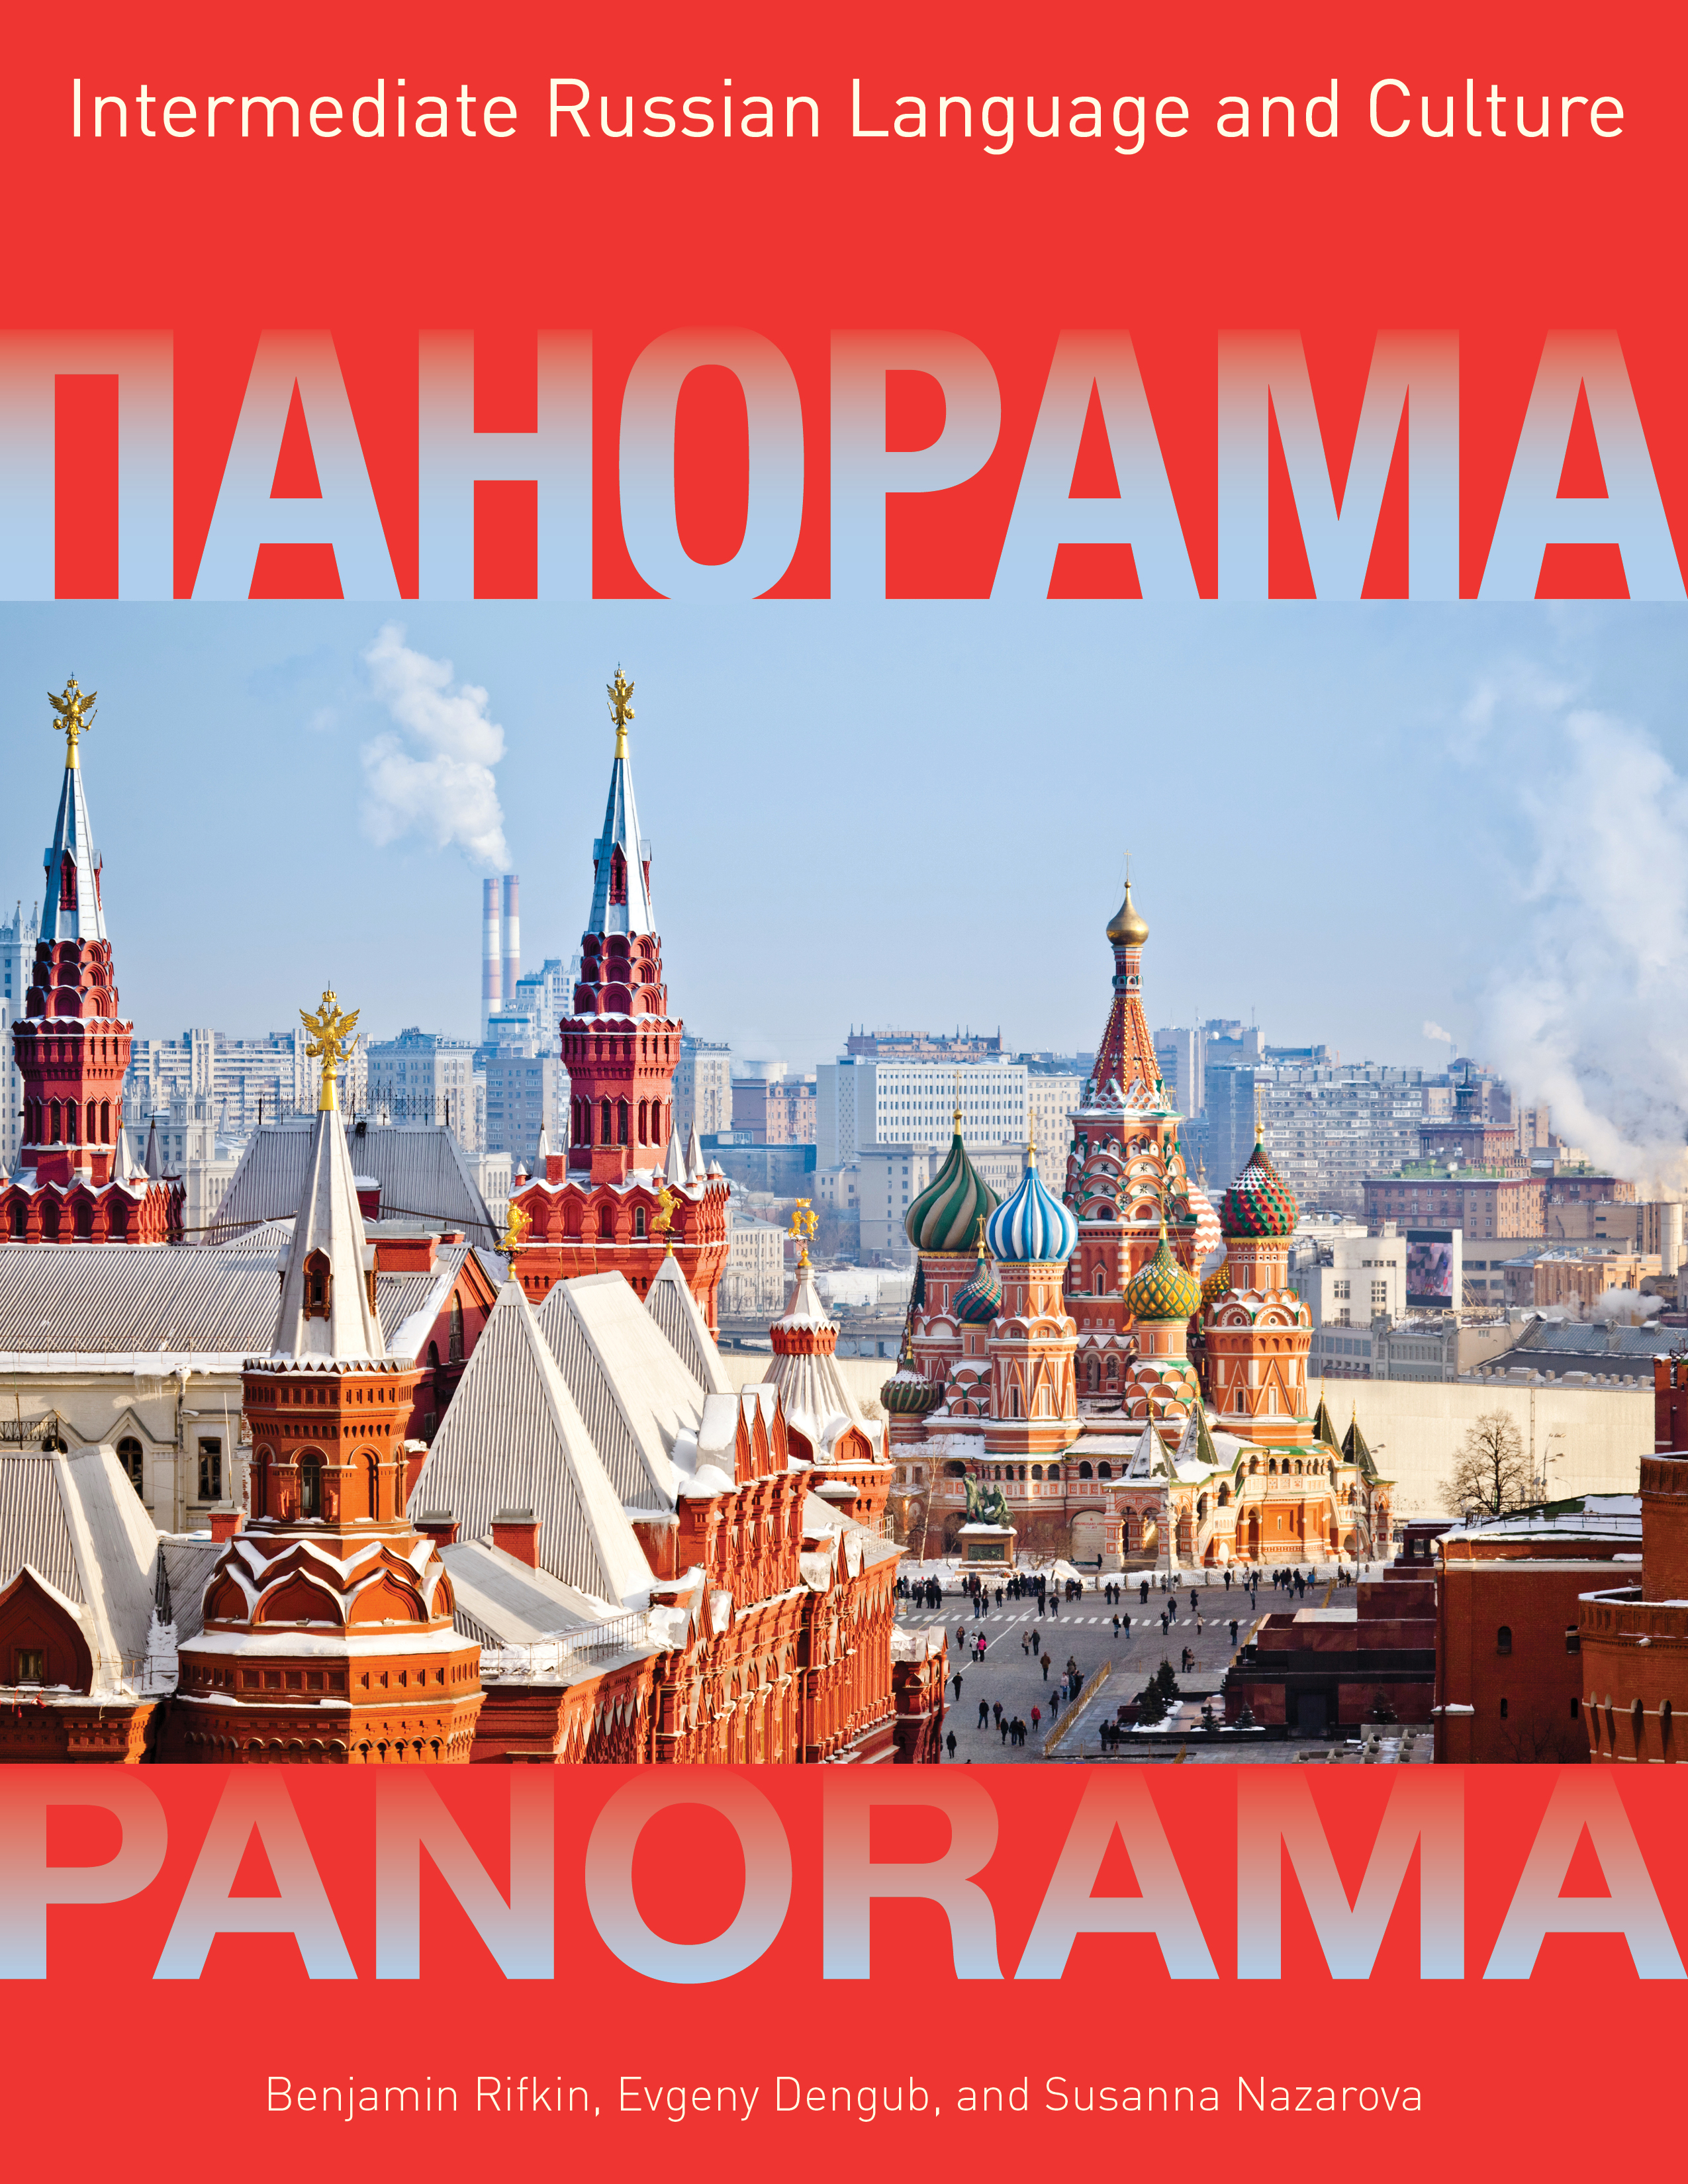 Panorama: Intermediate Russian Language and Culture